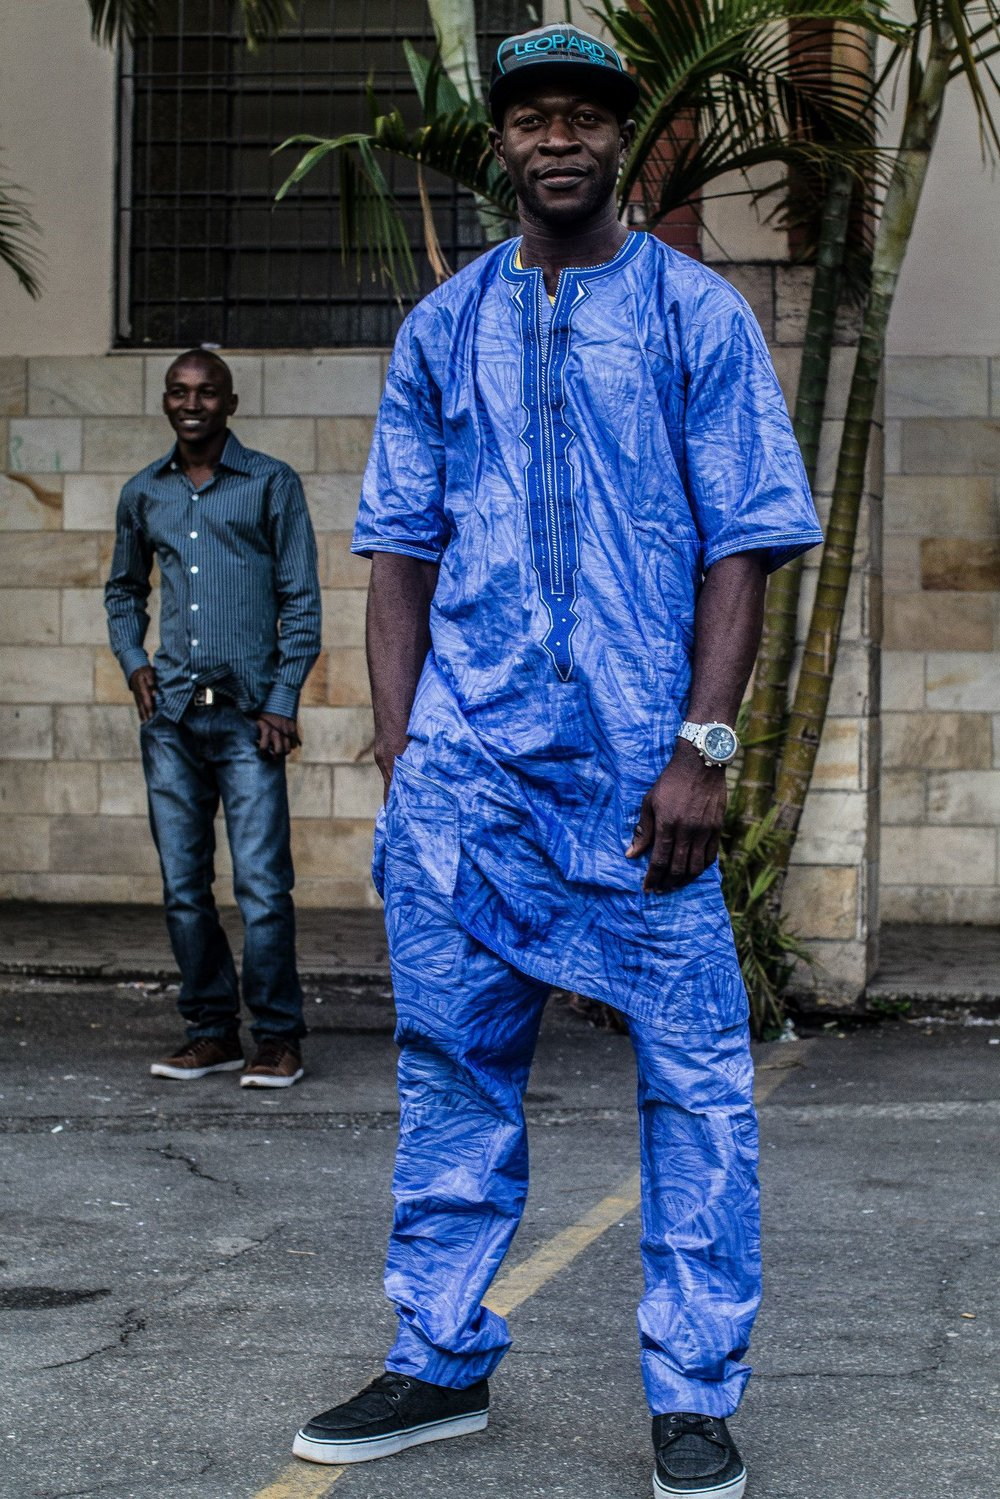 Abou Traore, 31 years old, six months in Brazil and a butcher in Sao Paulo - he was a truck driver in Mali.